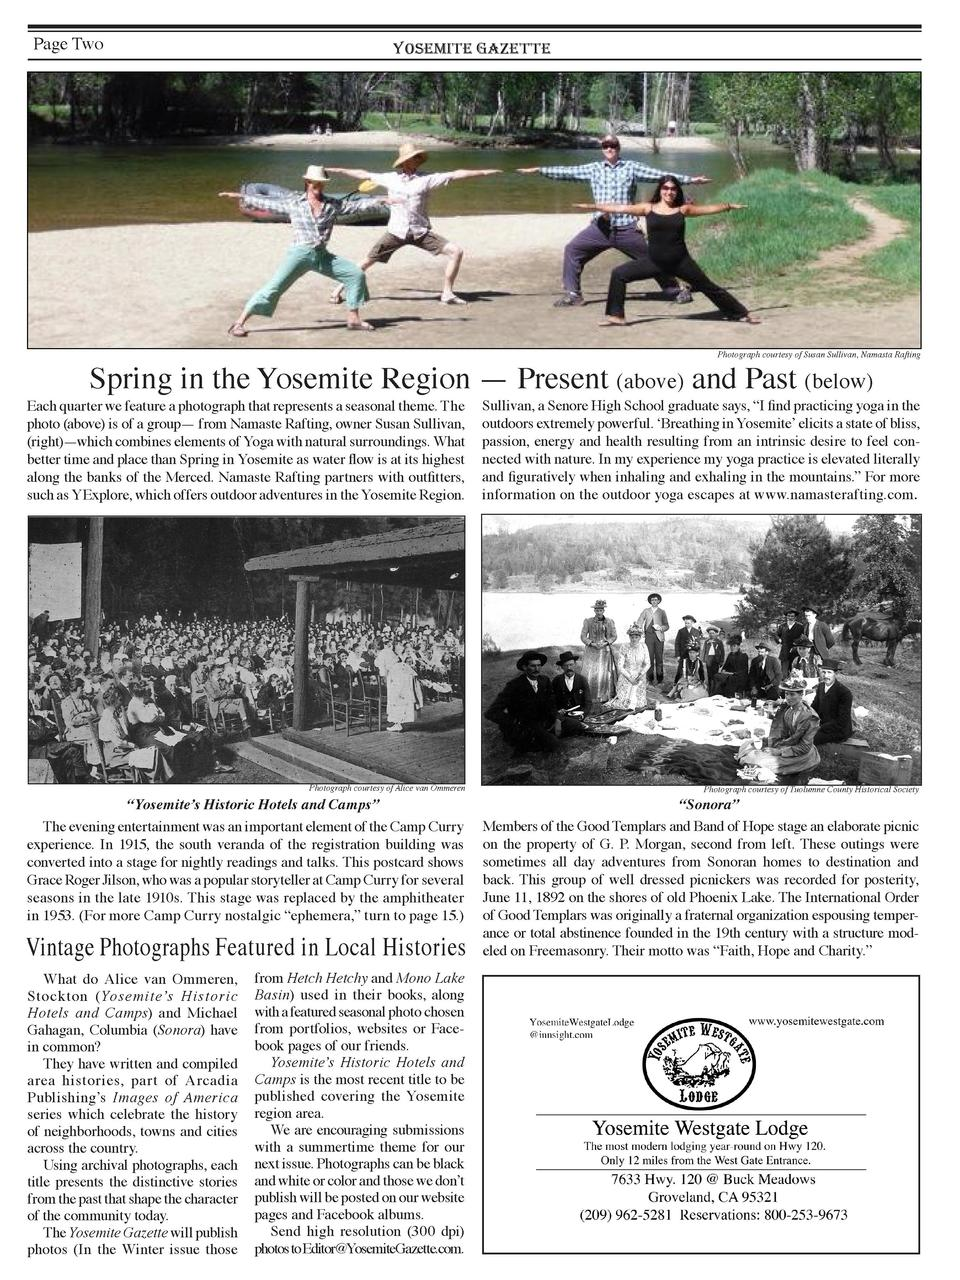 Page Two  YOSEMITE GAZETTE  Photograph courtesy of Susan Sullivan, Namasta Rafting  Spring in the Yosemite Region     Pres...